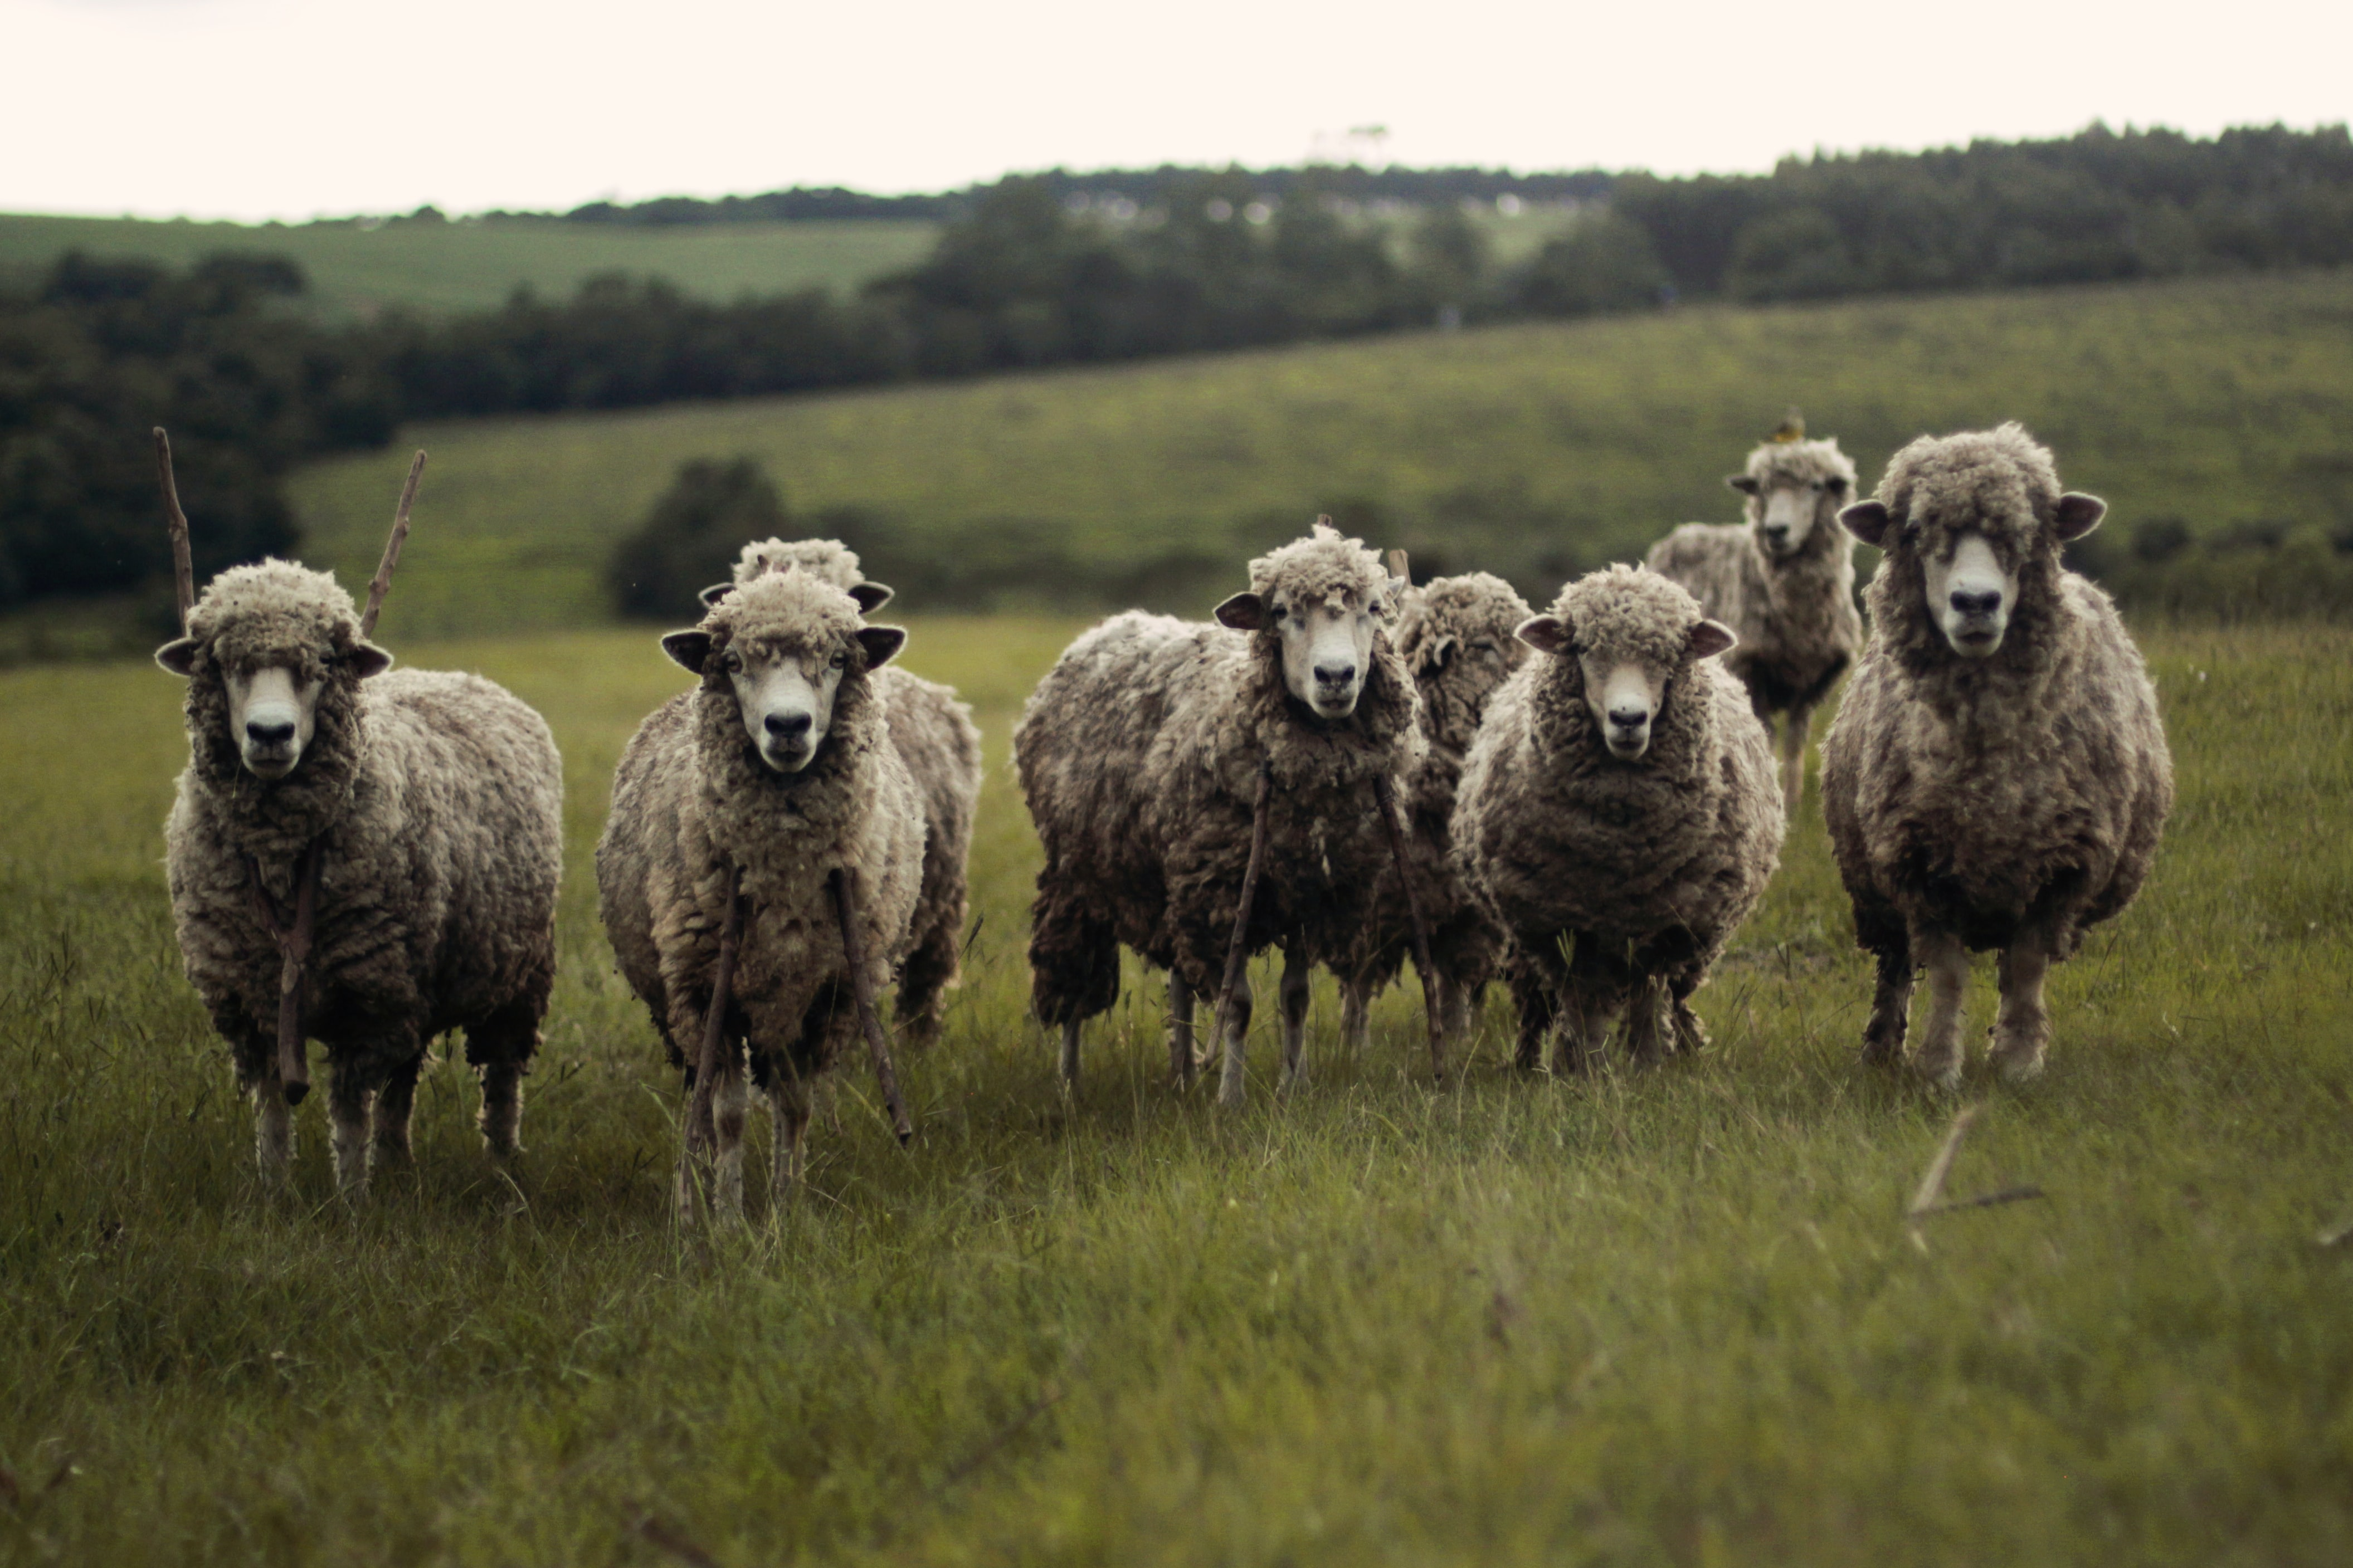 Sheep standing in a grassy field